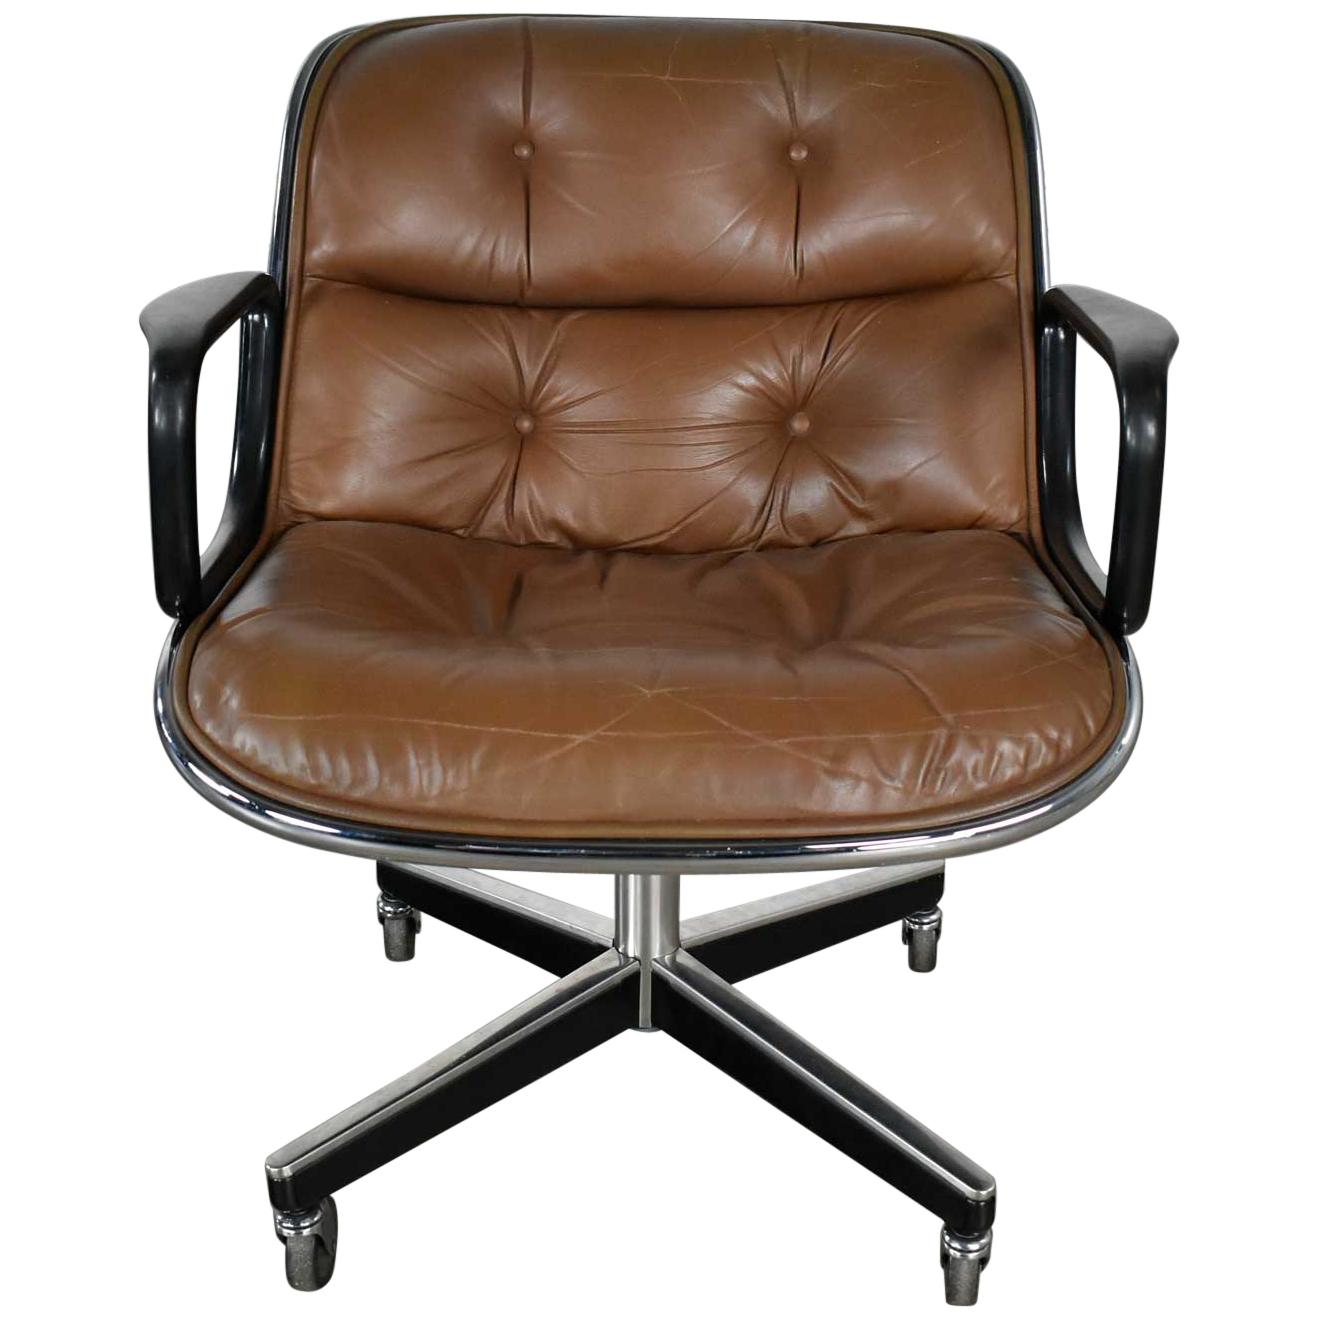 Executive Armchair by Charles Pollock for Knoll Brown Leather with 4 Prong Base